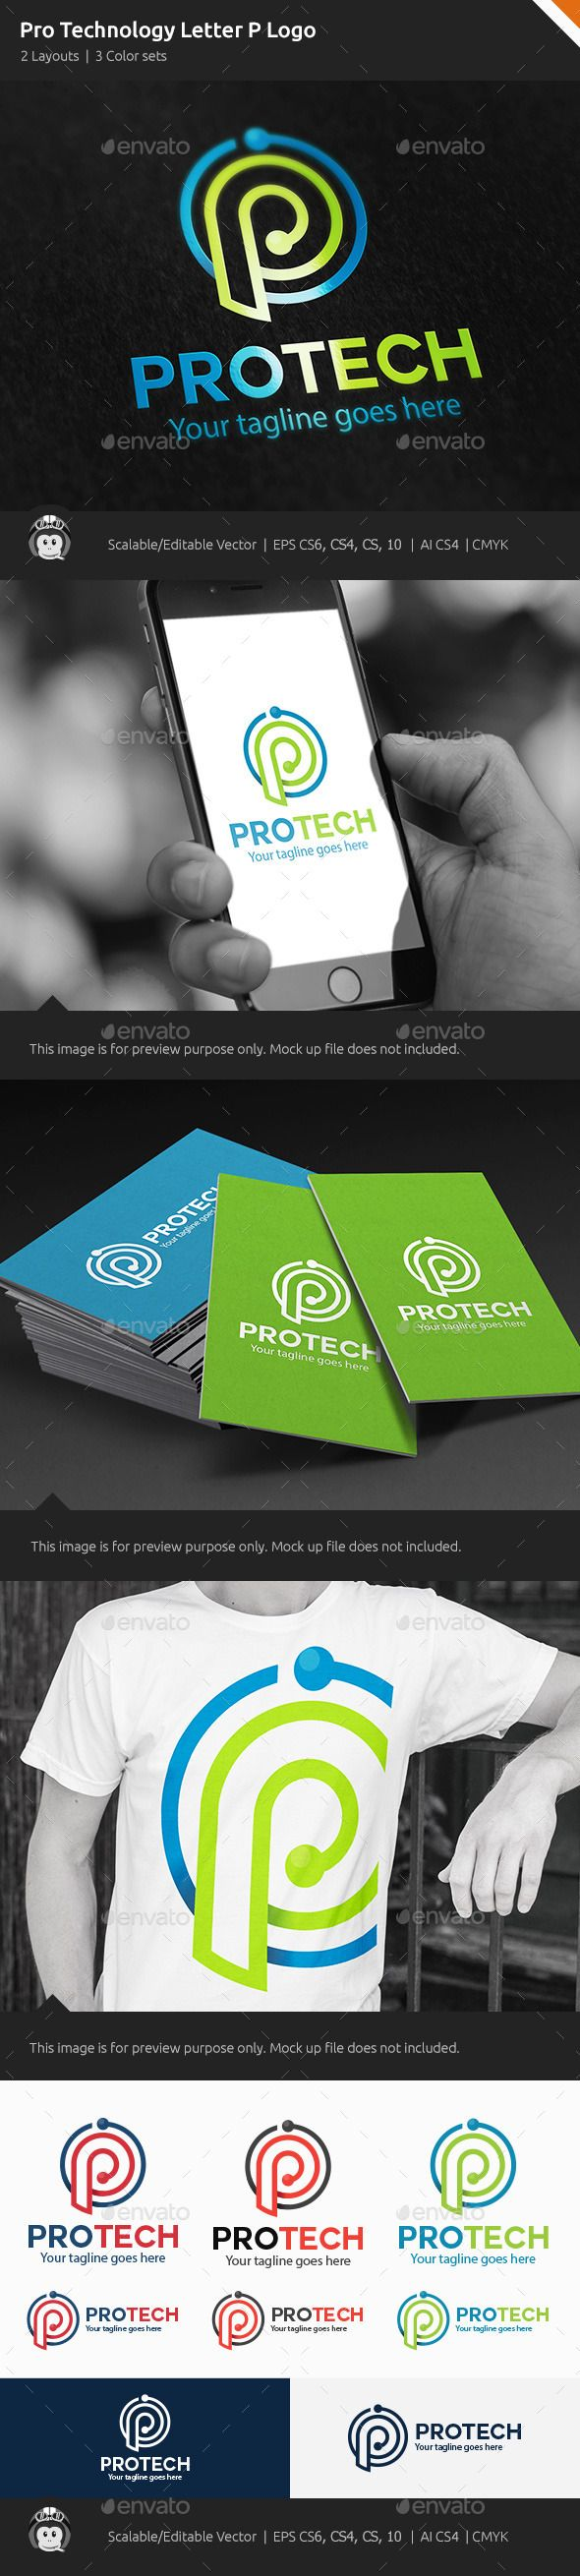 Pro Technology Letter P Logo — Vector EPS #creative #electronic • Available here → https://graphicriver.net/item/pro-technology-letter-p-logo/10378521?ref=pxcr